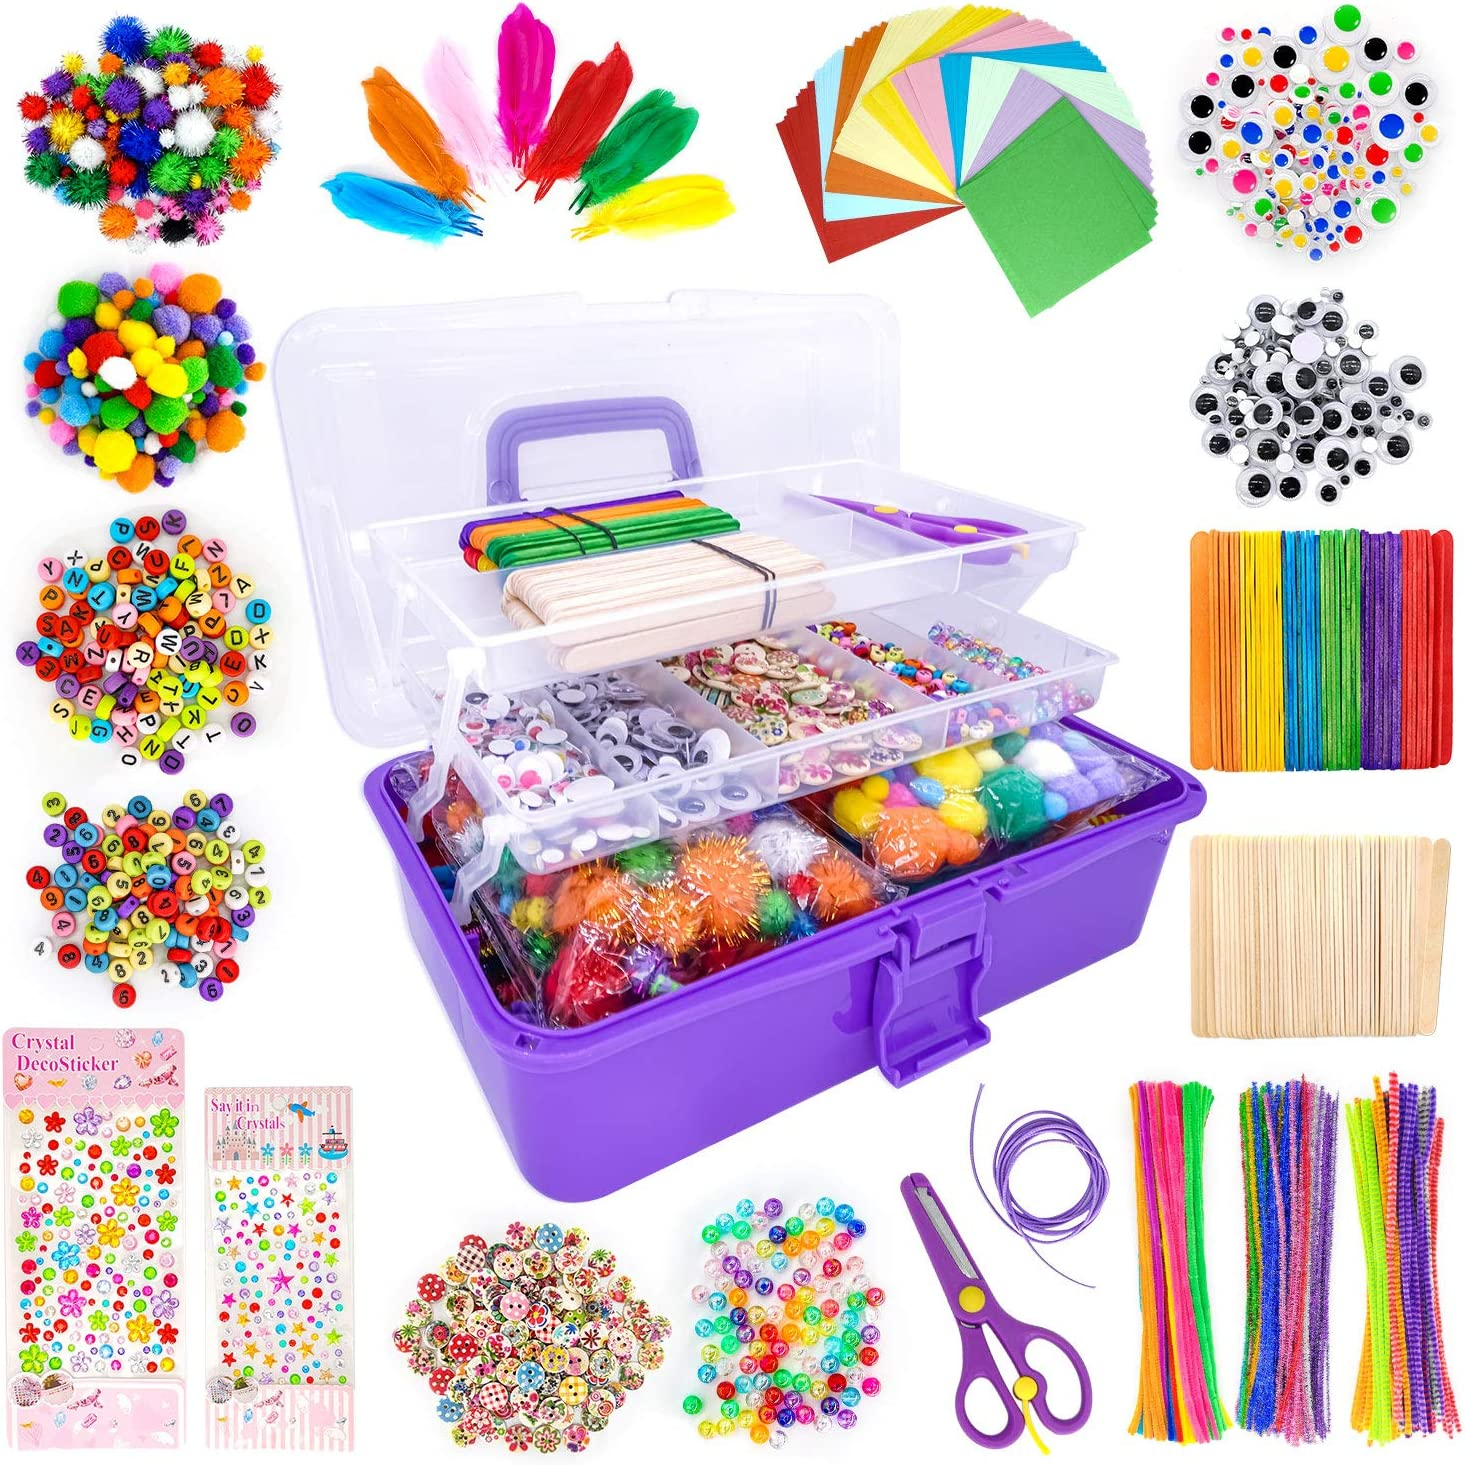 1405 Pcs Art and Craft Supplies for Kids, Toddler DIY Craft Art Supply Set Included Pipe Cleaners, Pom Poms, Feather, Folding Storage Box - All in One for Craft DIY Art Supplies (Purple)